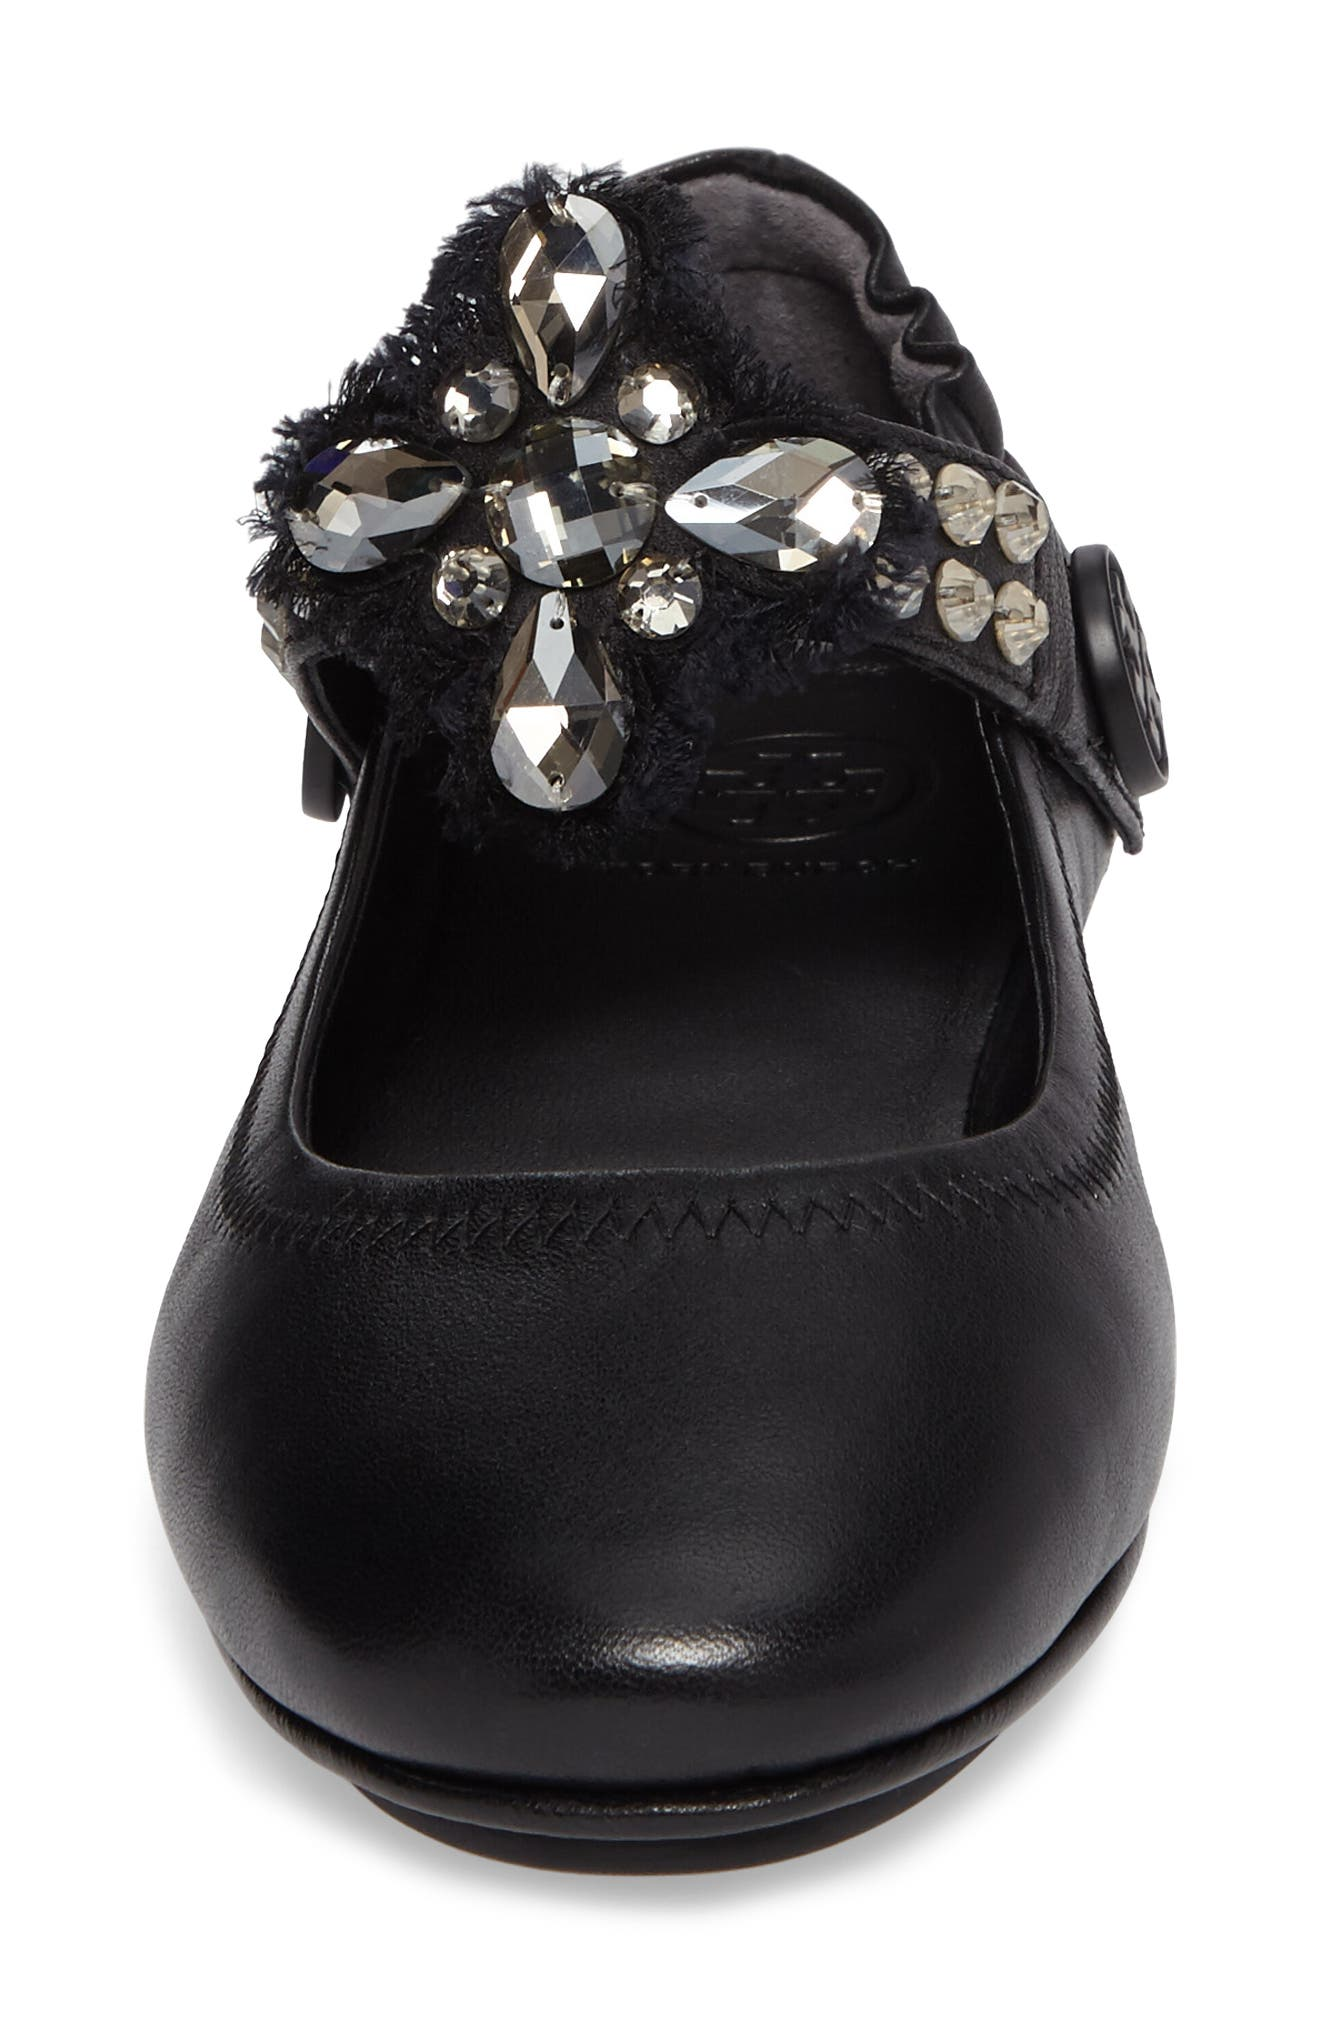 Minnie Embellished Convertible Strap Ballet Flat,                             Alternate thumbnail 5, color,                             019